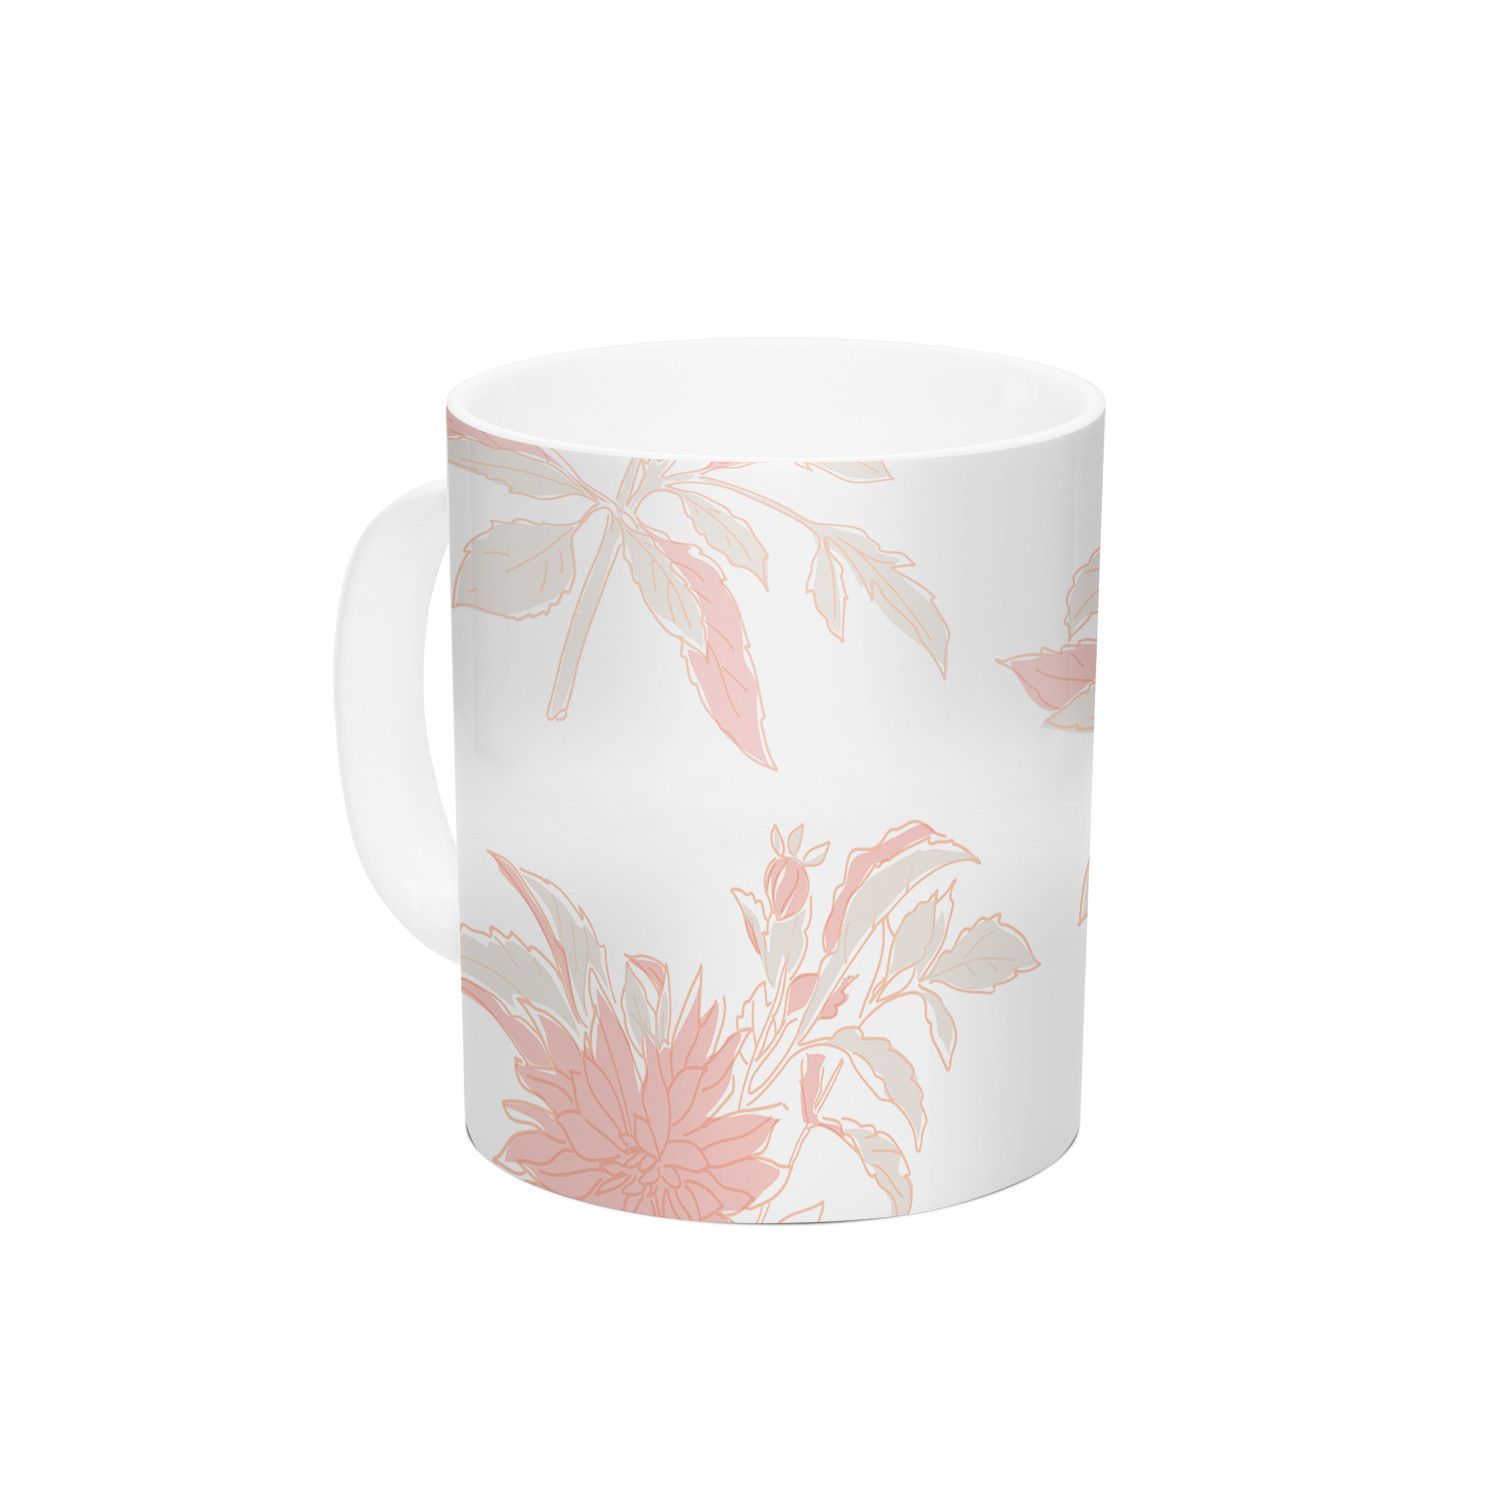 Pastel Fluers by Gukuuki 11 oz. Ceramic Coffee Mug